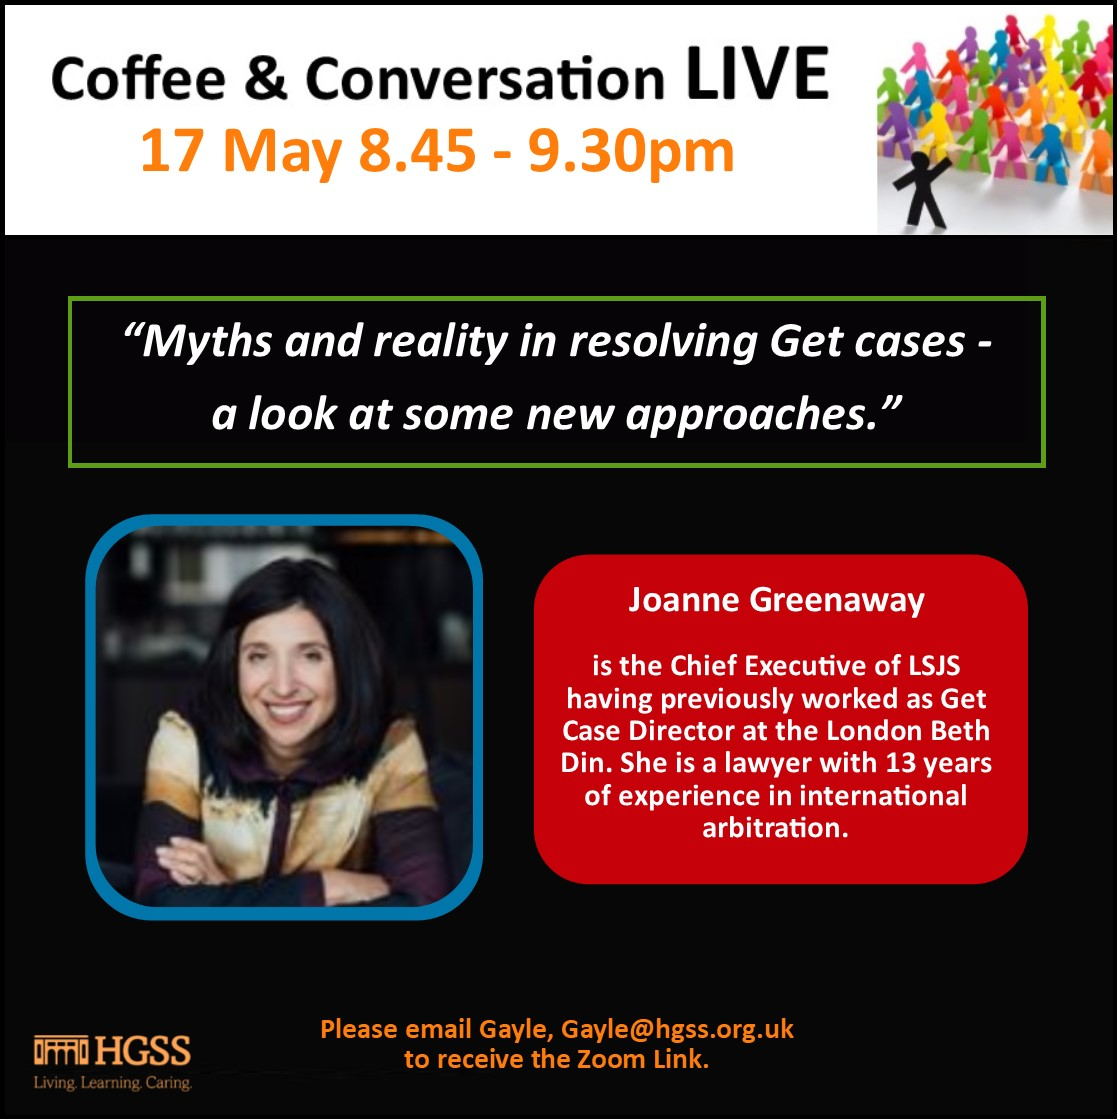 Coffee & Conversation LIVE @ HGSS